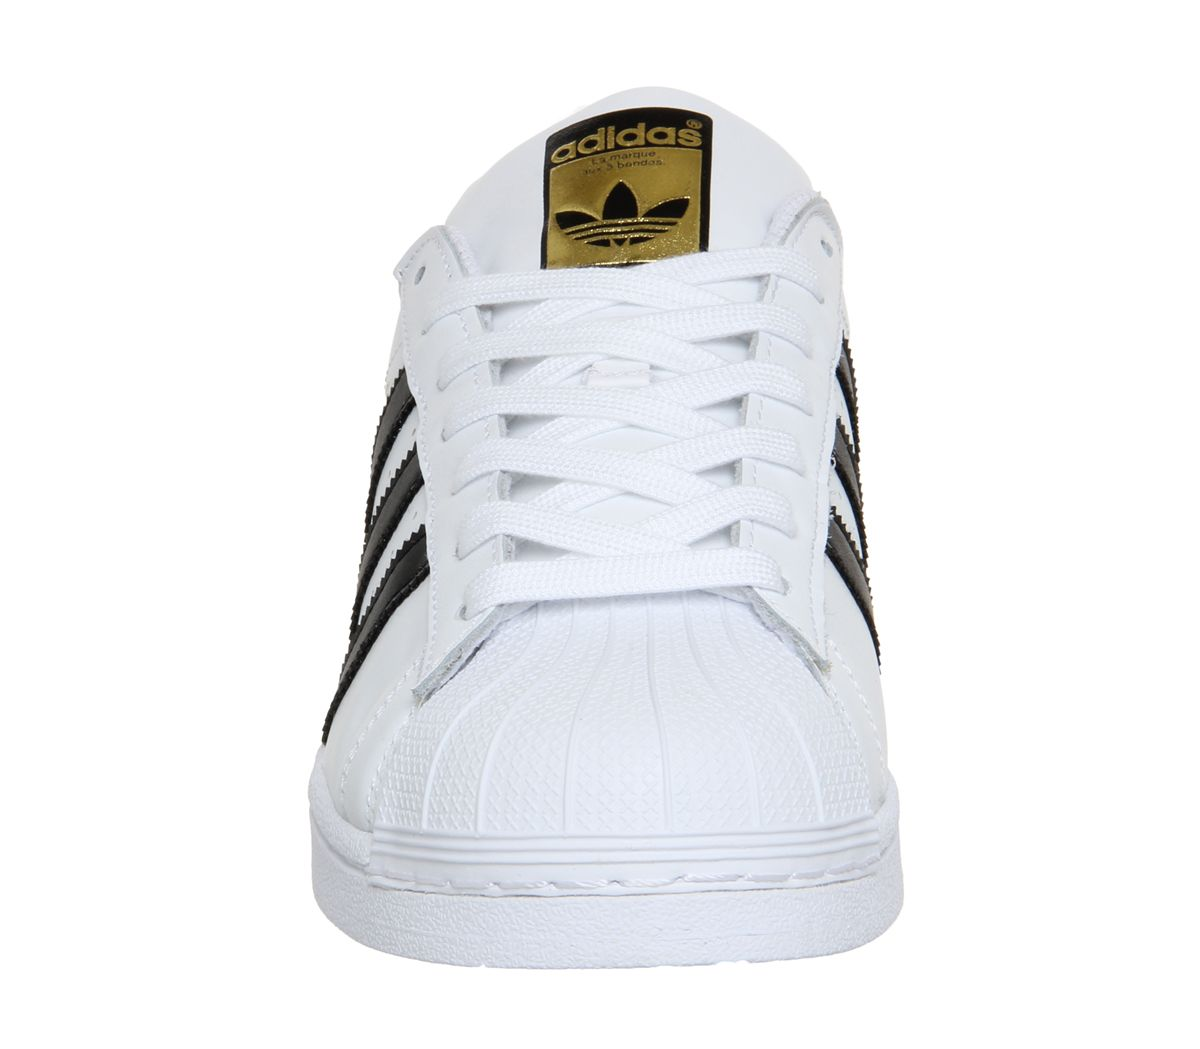 new concept 28663 3b92e adidas Superstar 1 White Black Foundation - Unisex Sports